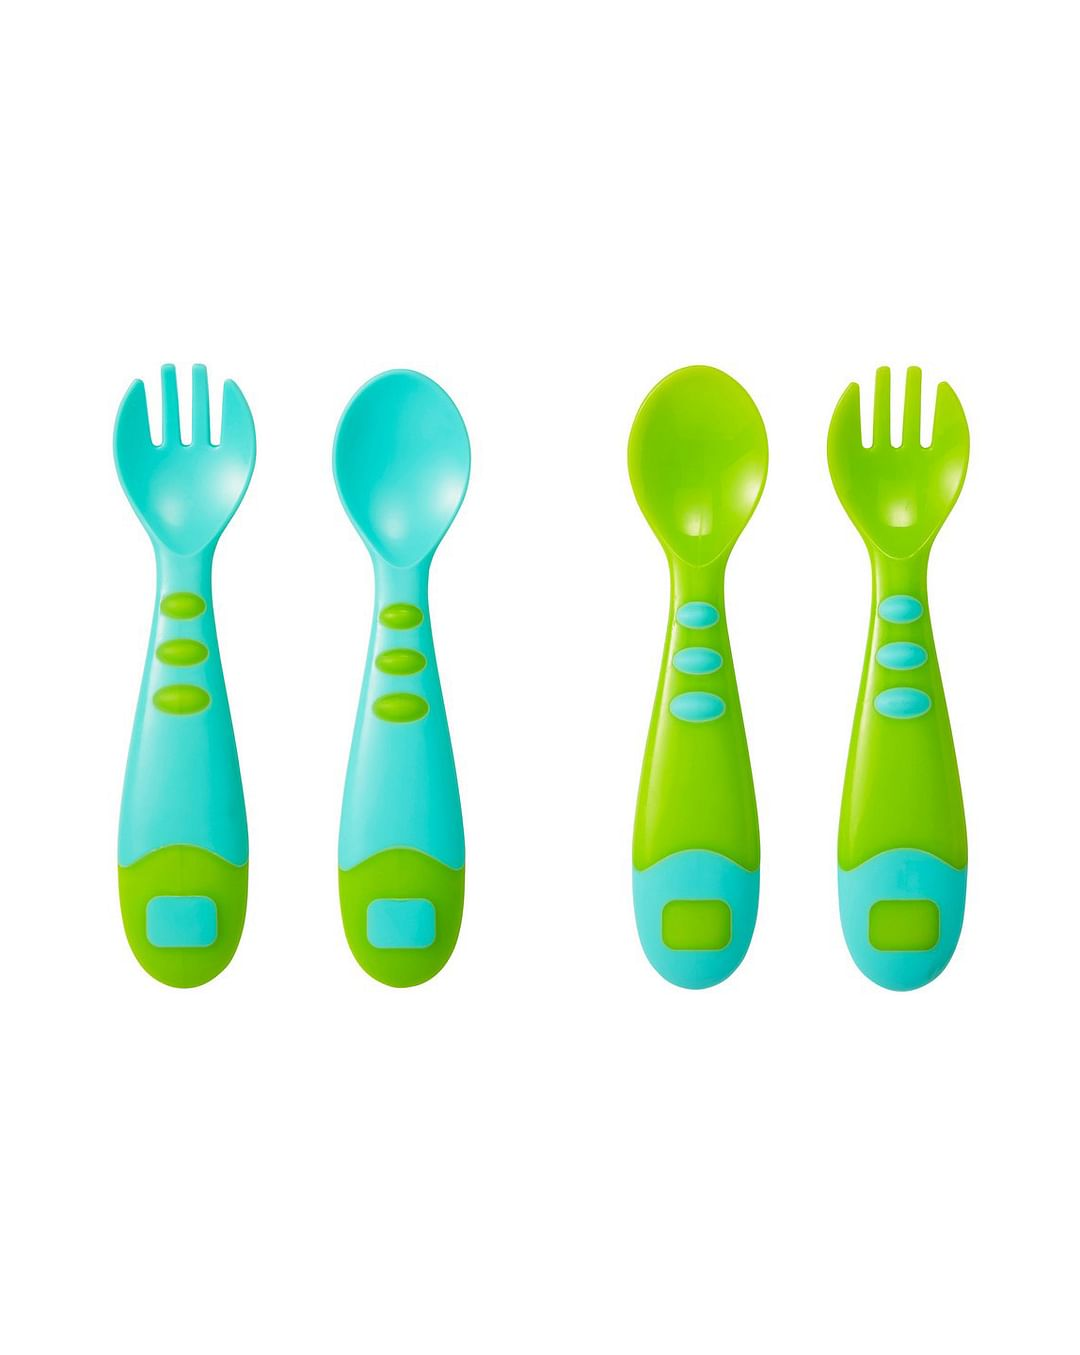 Mothercare | Easy Grip Spoon and Fork - 4 Pieces Set